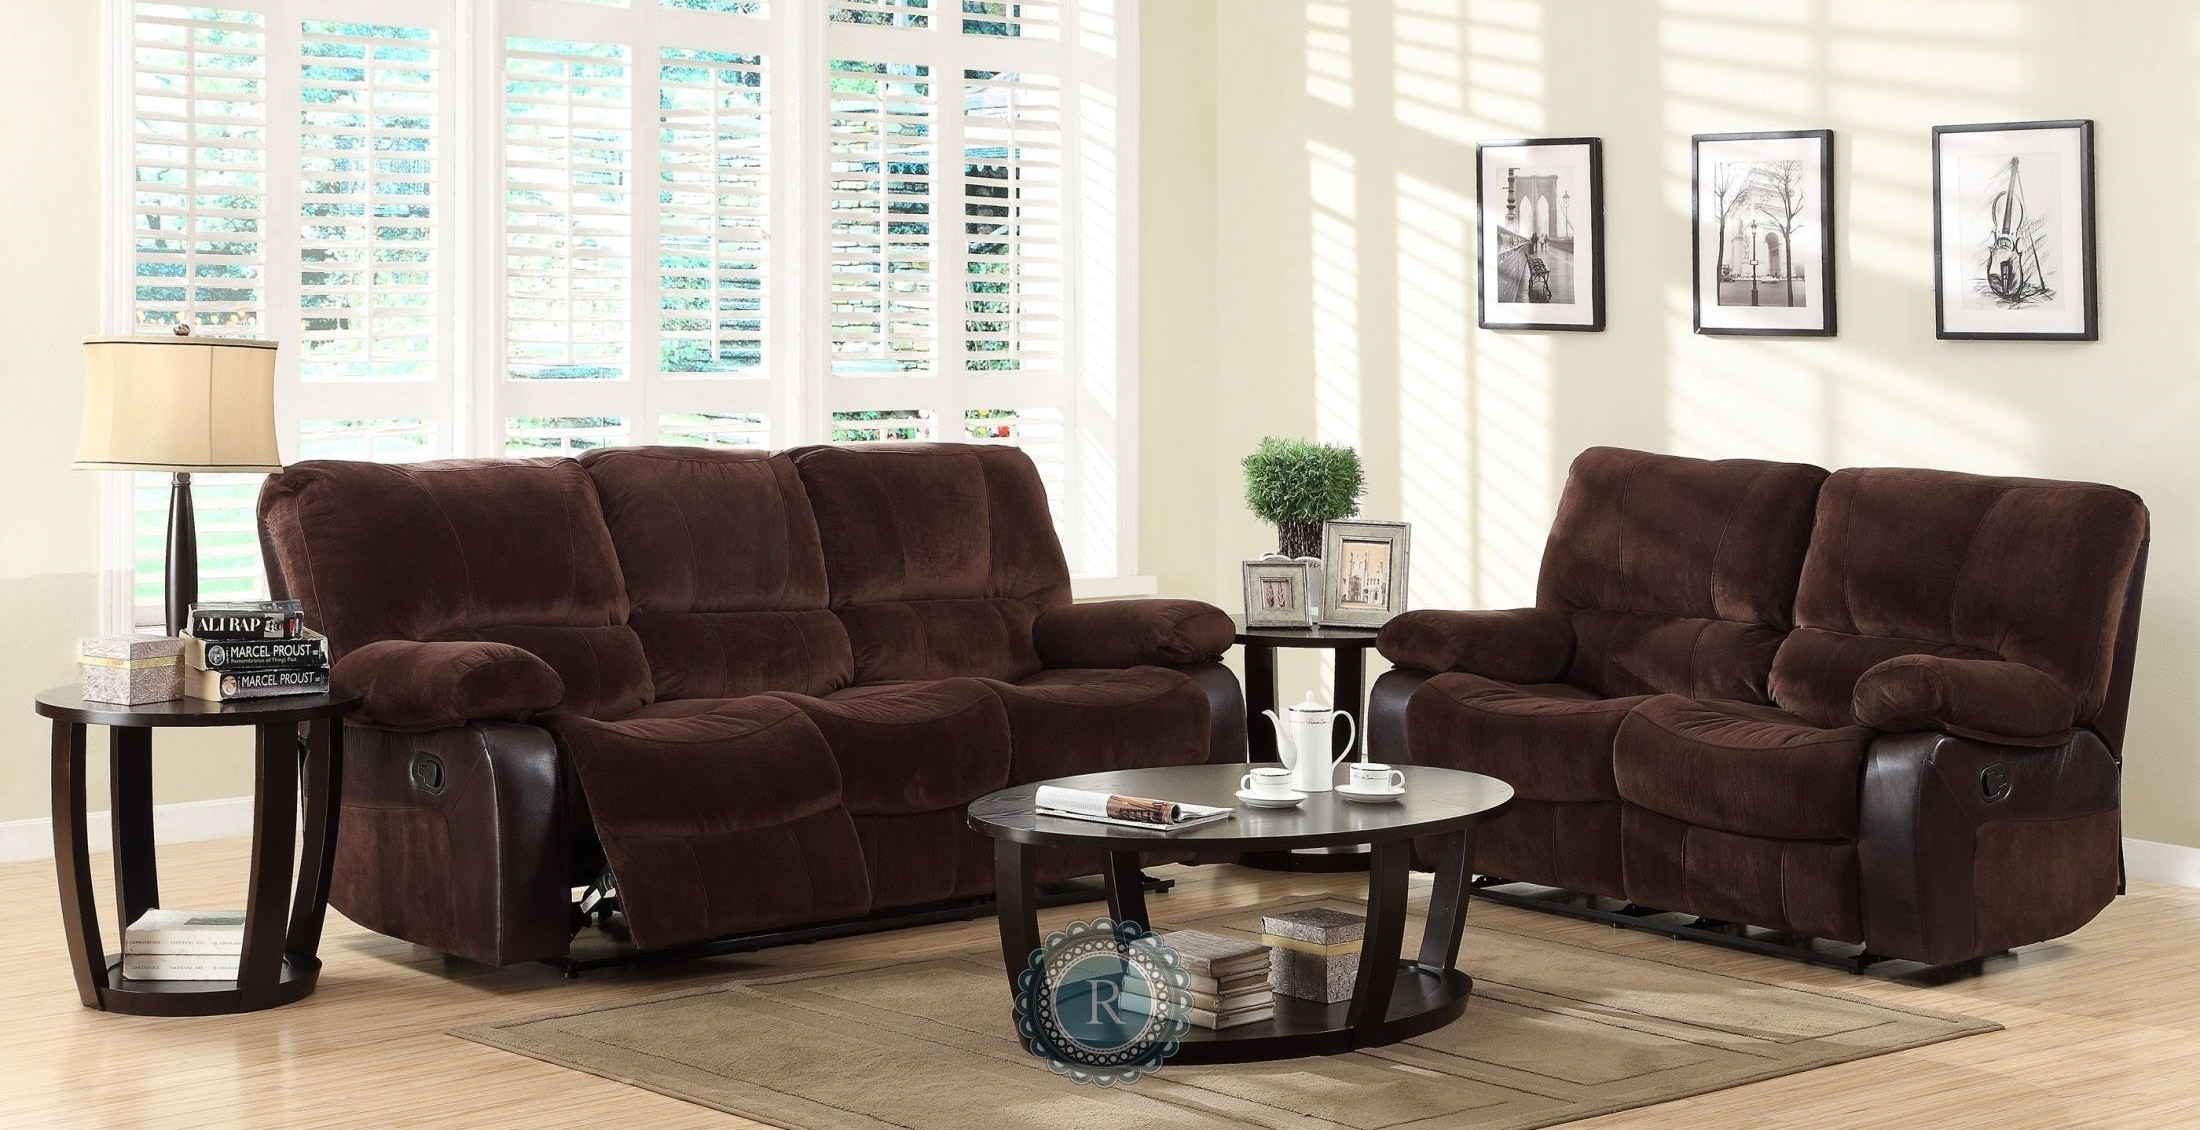 Caputo Reclining Living Room Set From Homelegance 39142 Coleman Furniture